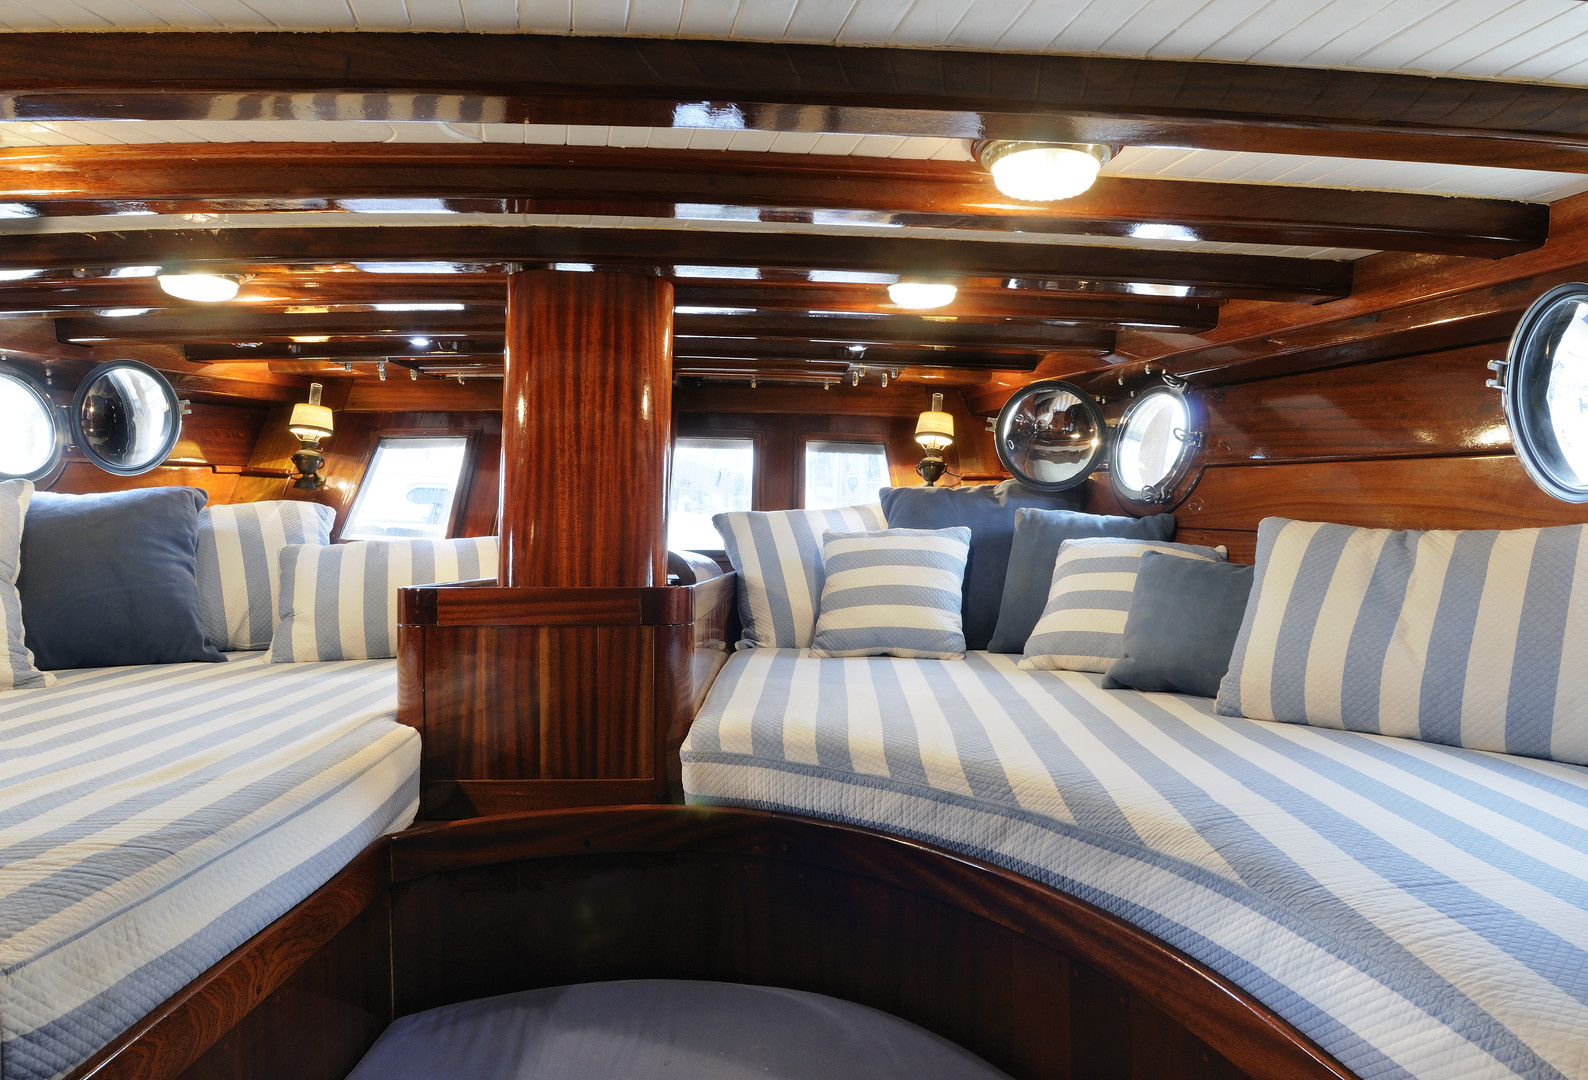 yacht sailboat interior.jpg